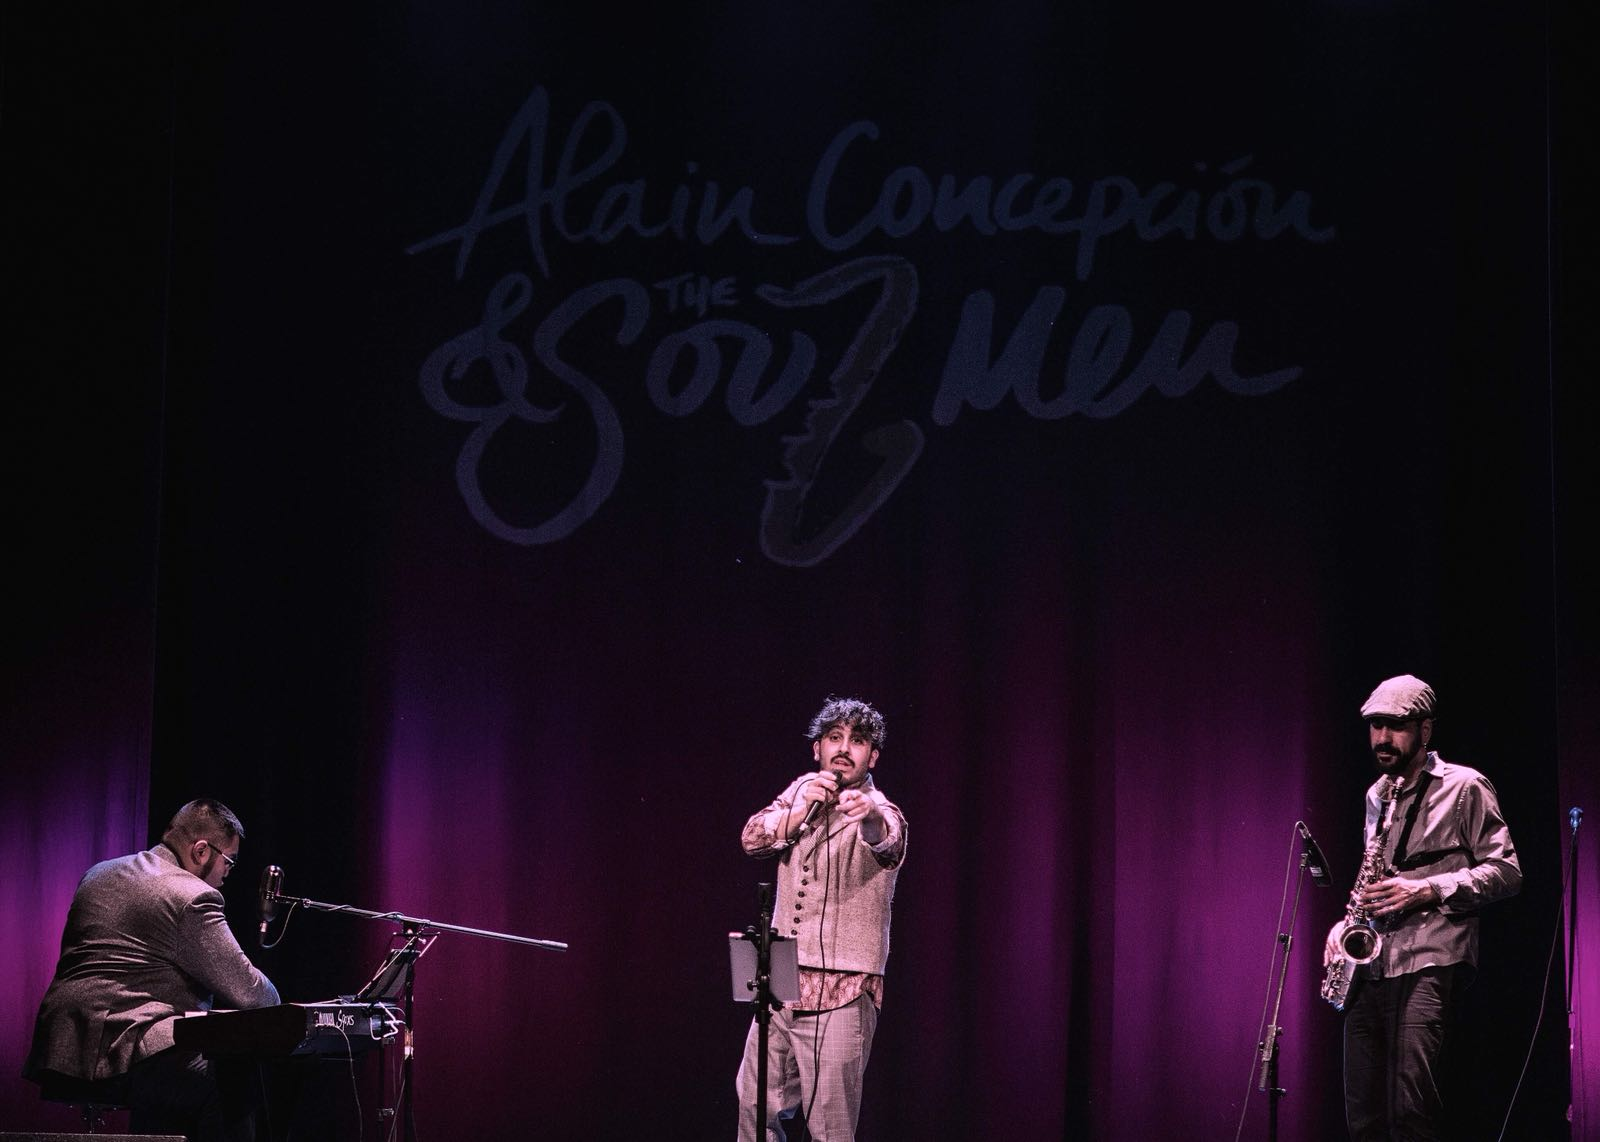 Alain Concepcion & The Soul Men